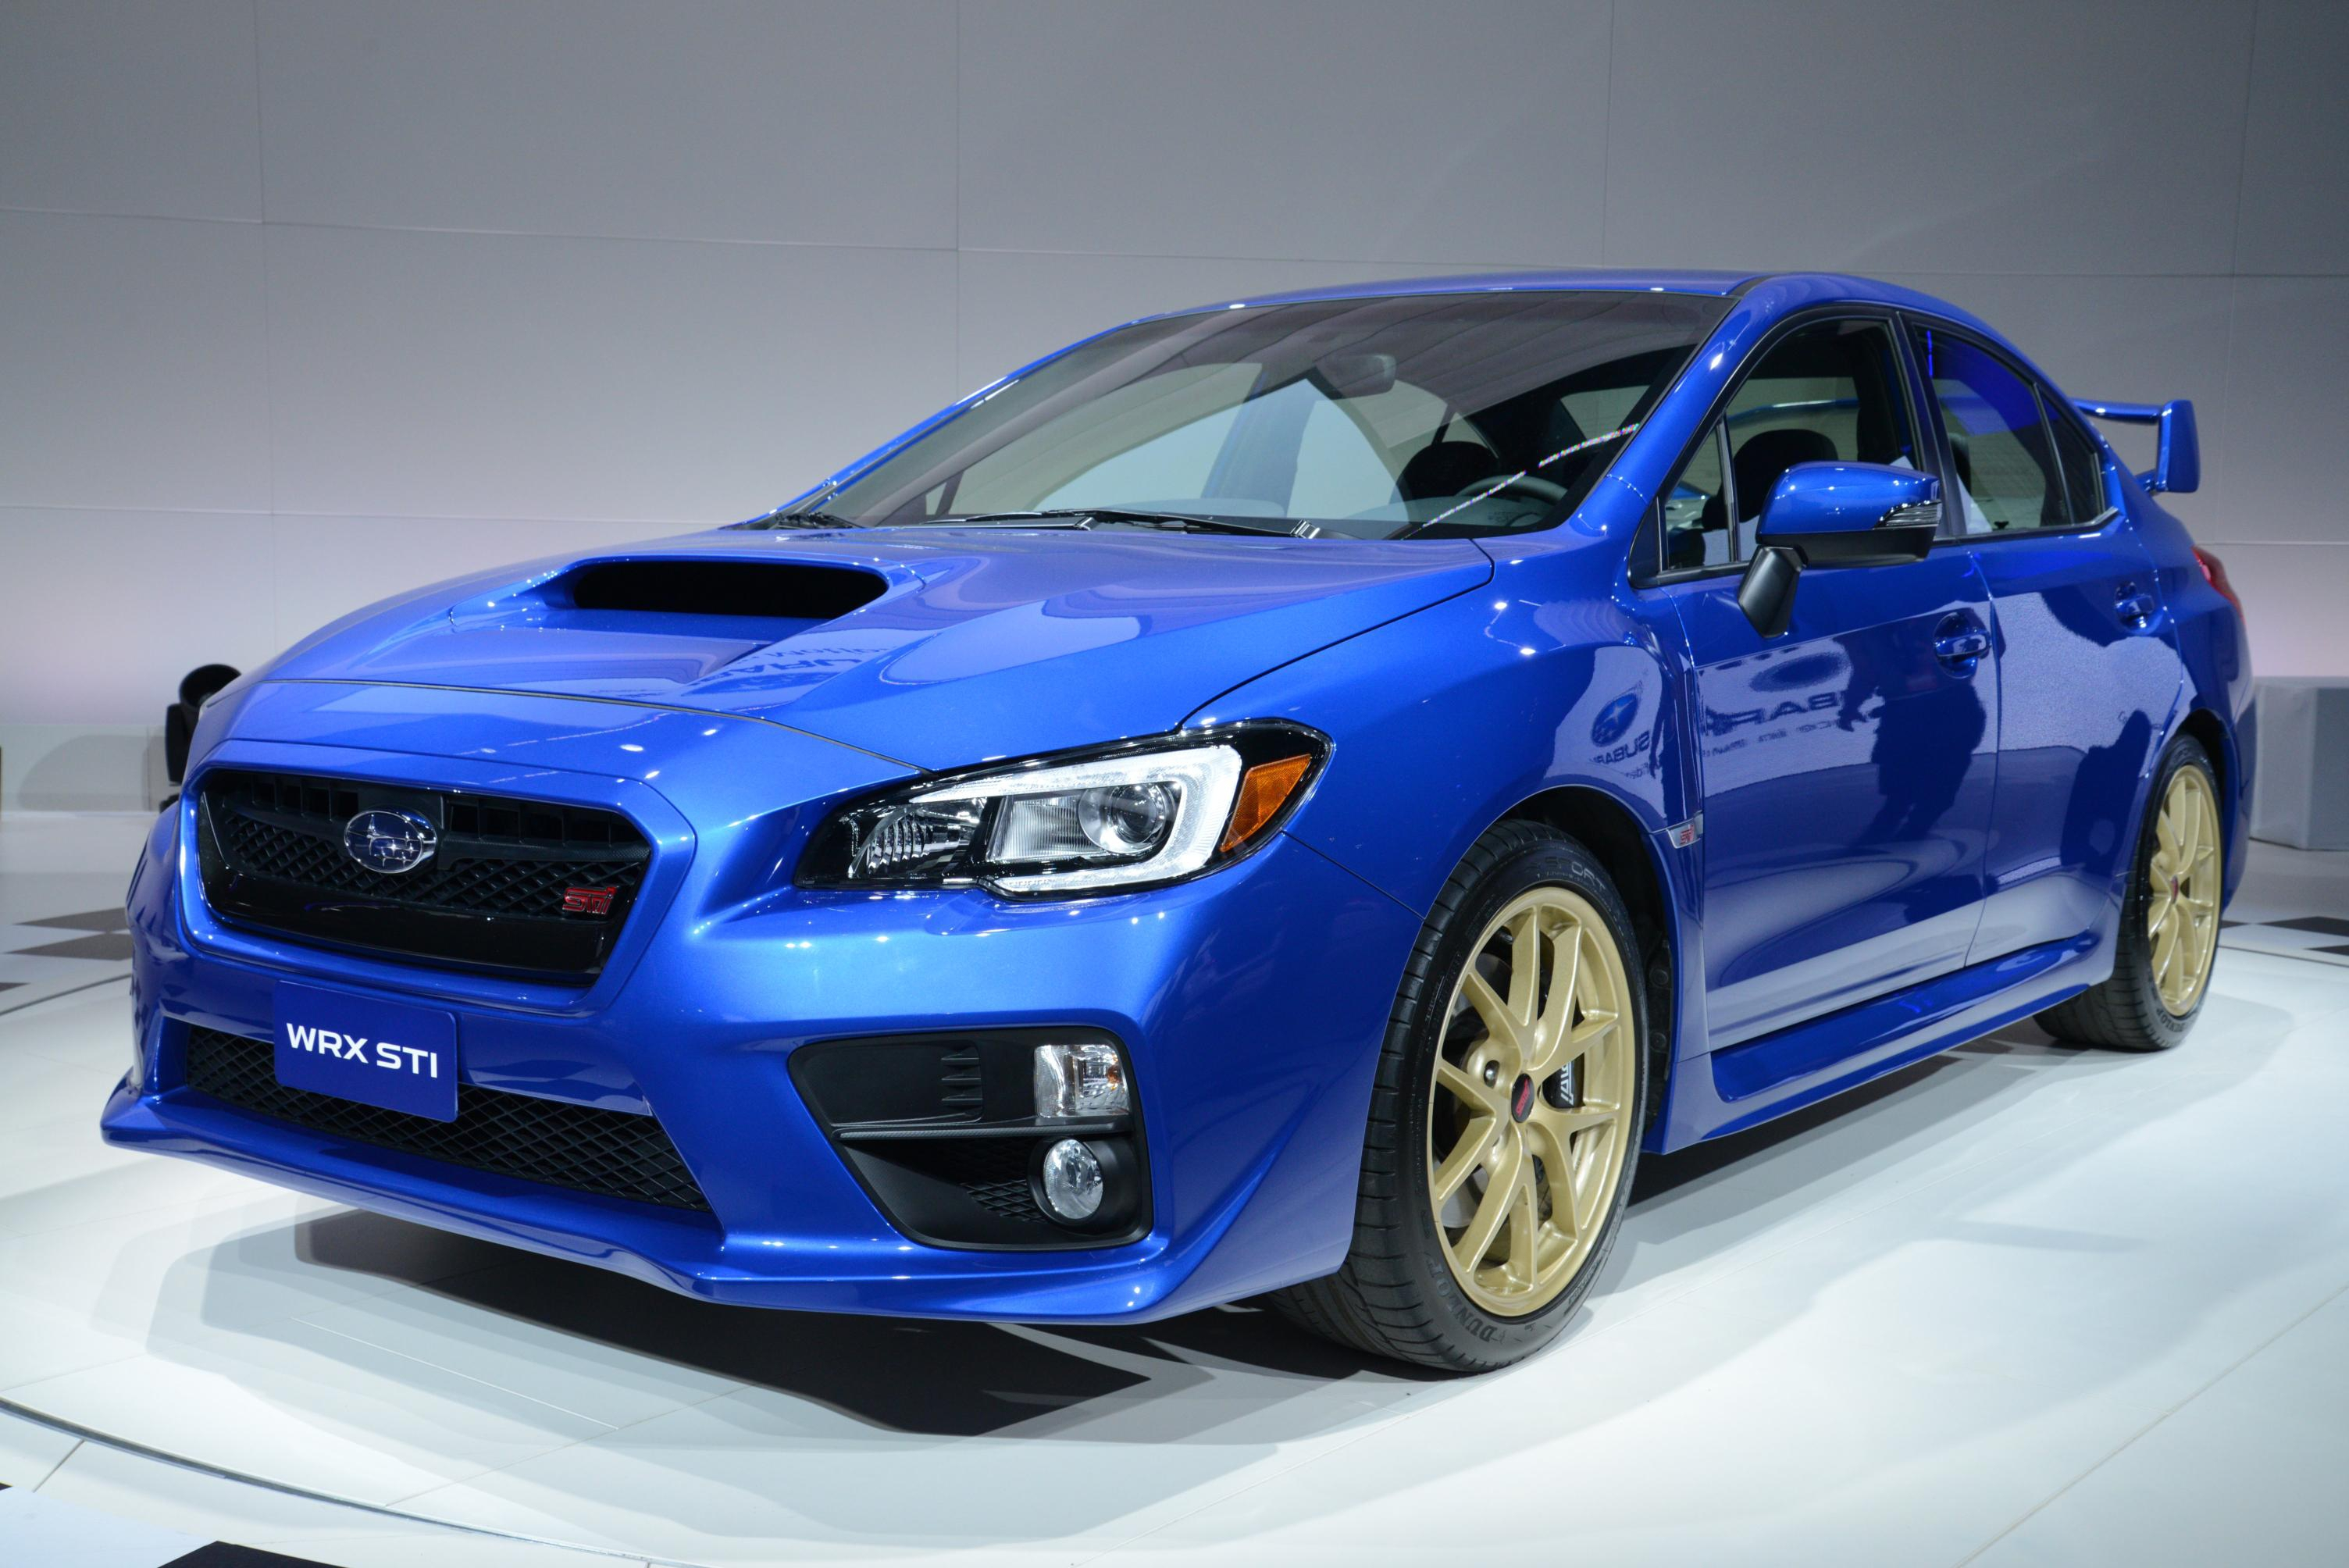 Subaru WRX Wallpapers Images Photos Pictures Backgrounds